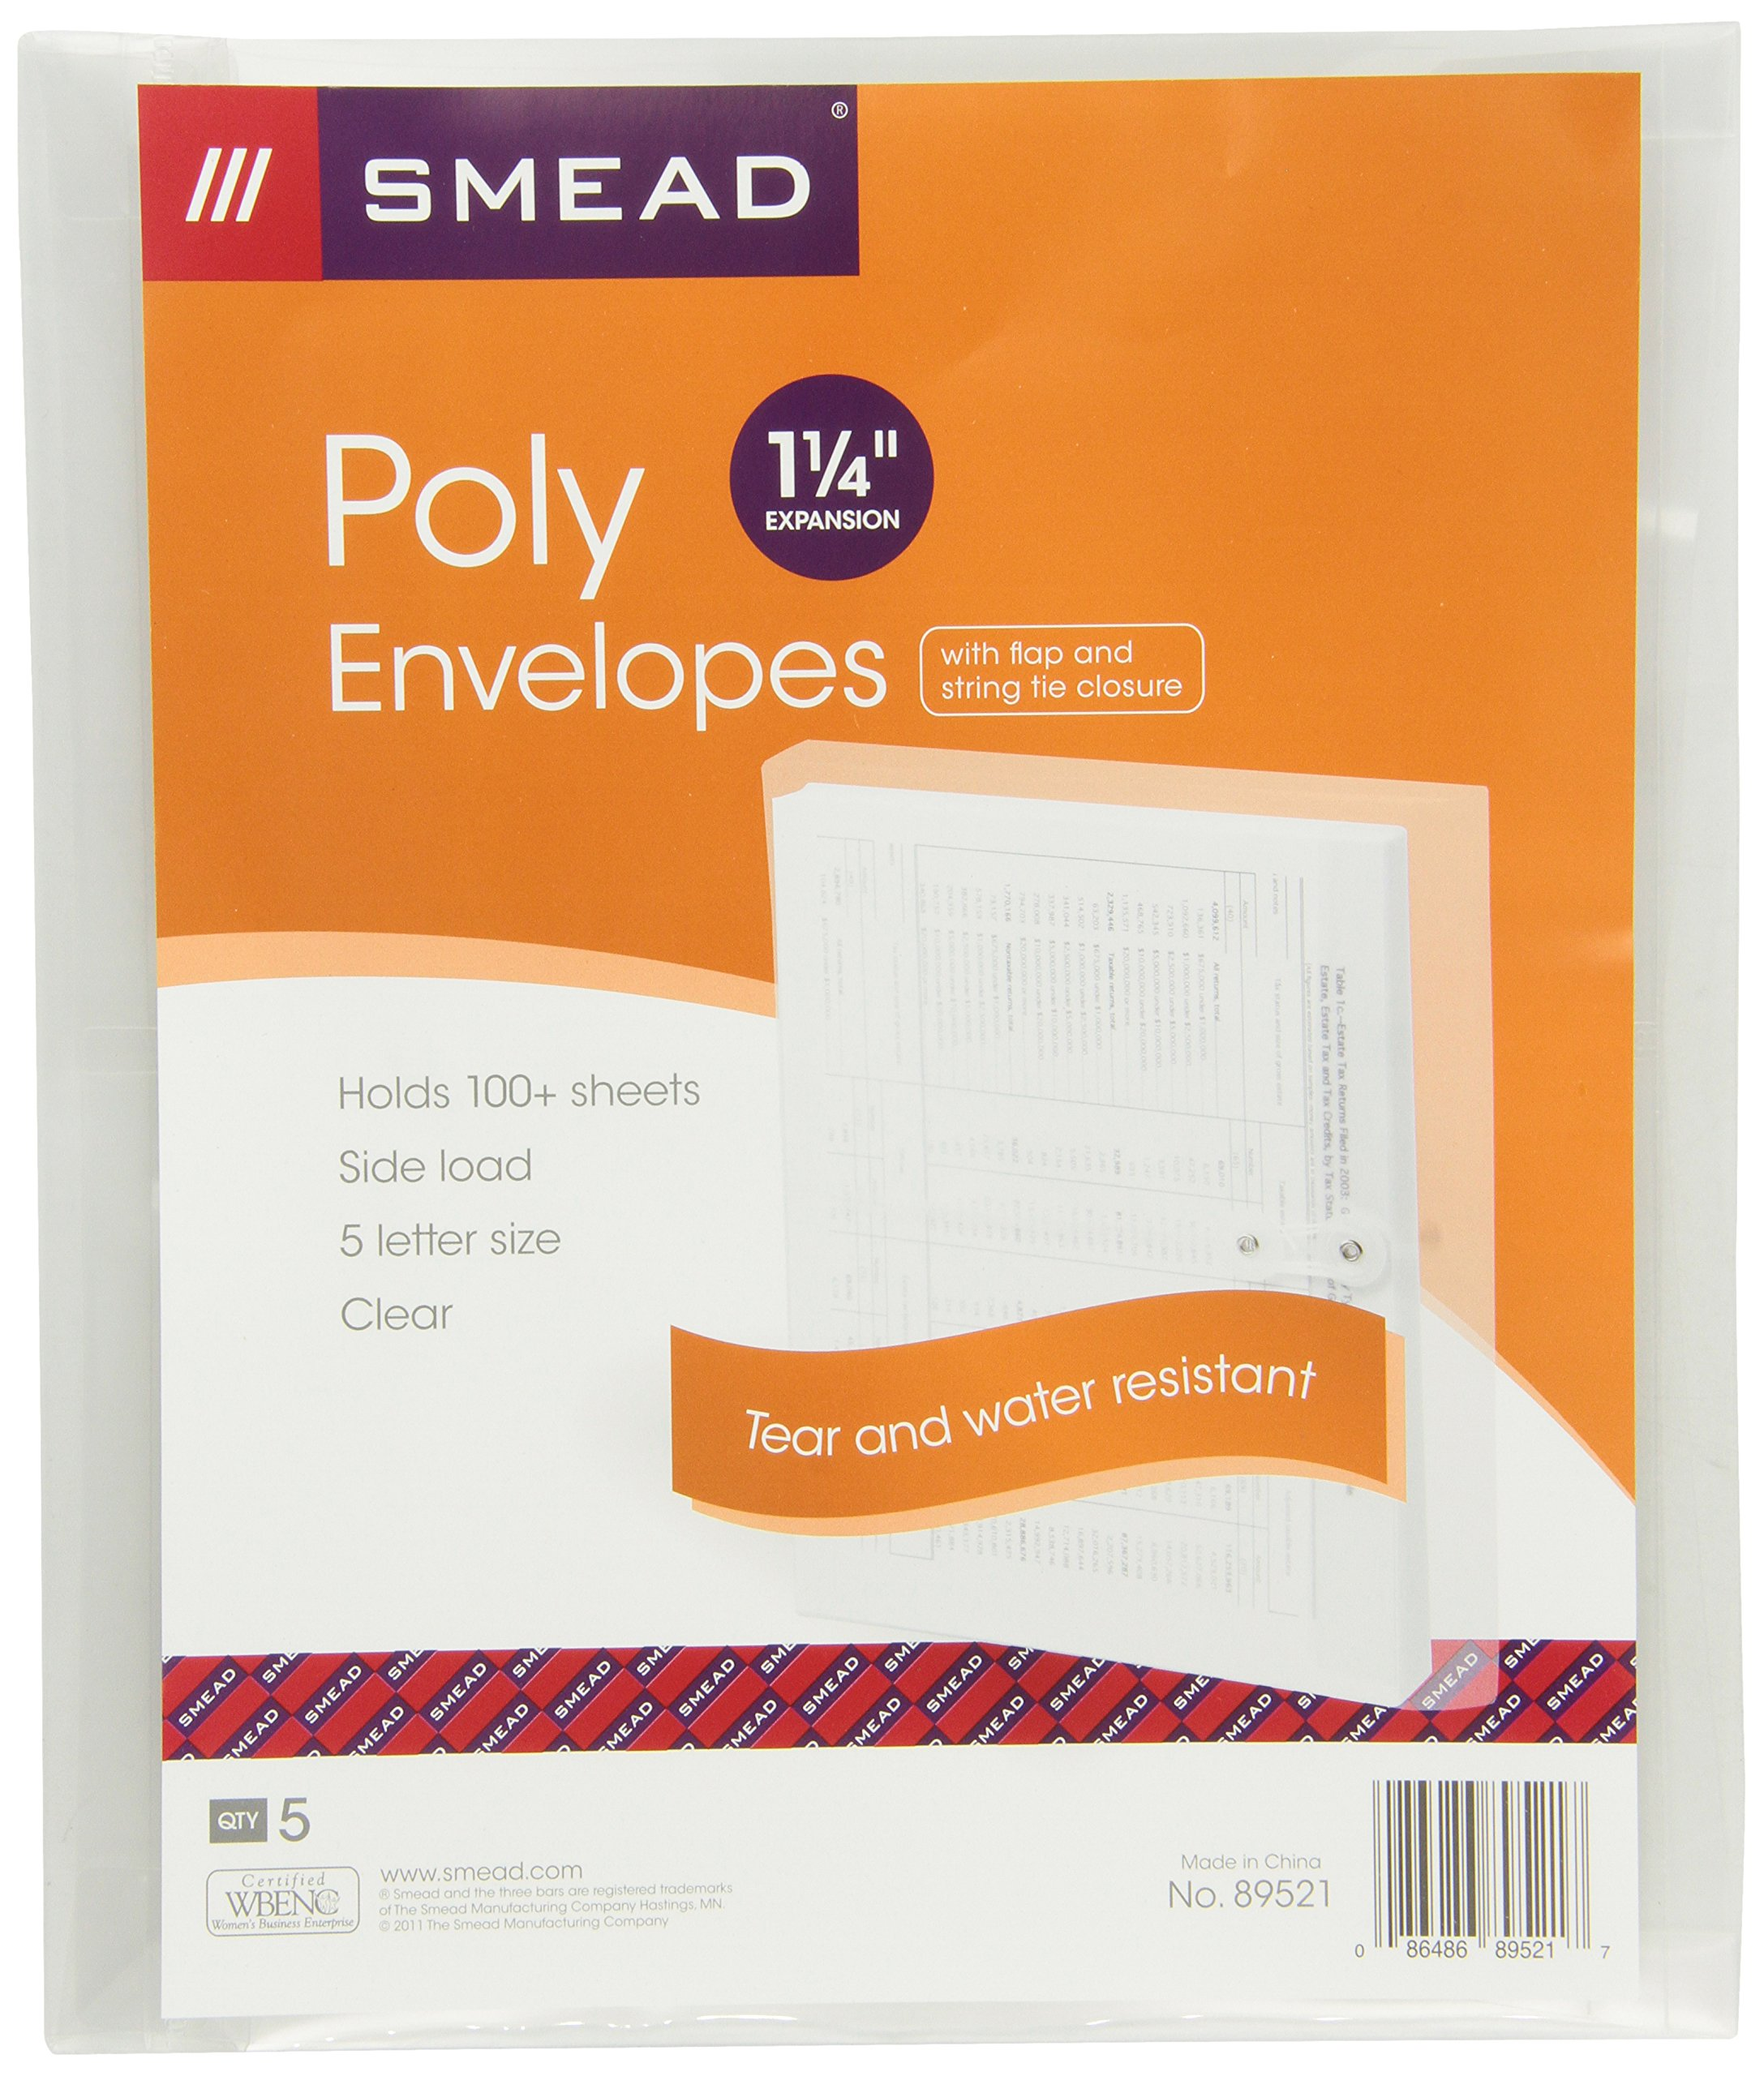 Smead Poly Envelope, 1 1/4 Inch Expansion, String-Tie Closure, Side Load, Letter Size, Clear, 5 per Pack (89521)